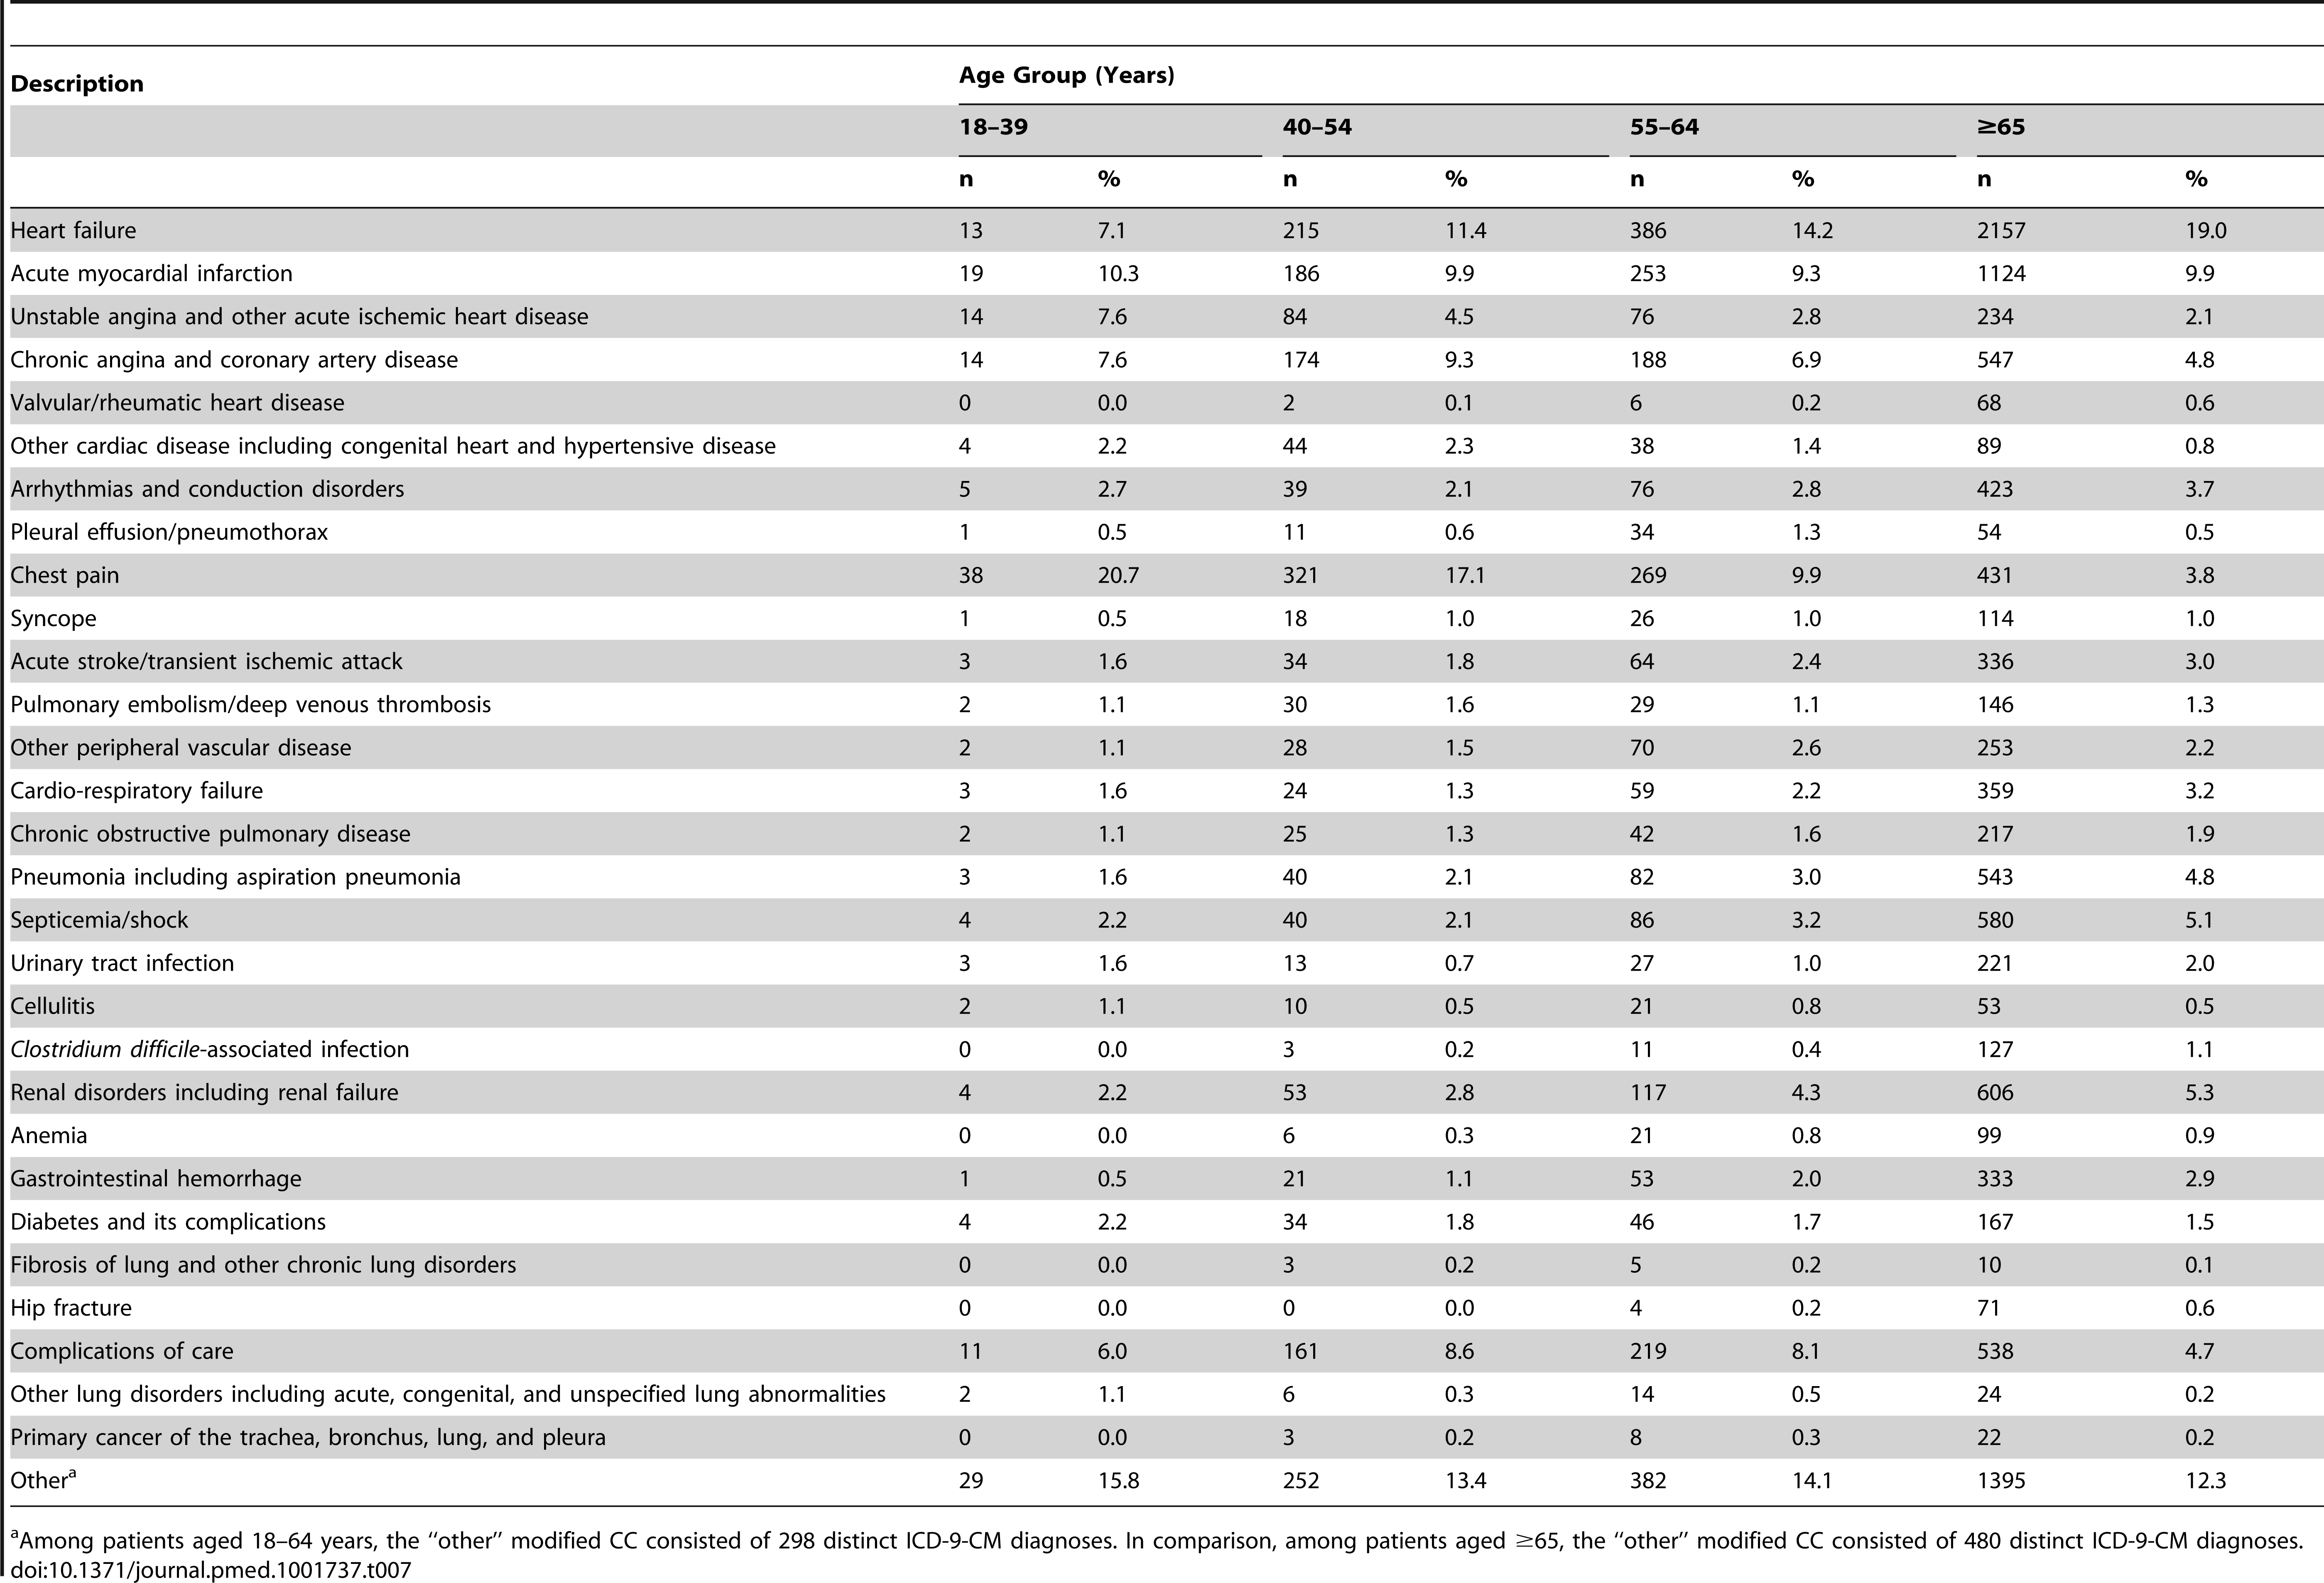 Principal readmission diagnosis within 30 days by modified condition categories among patients with an index hospitalization for myocardial infarction.